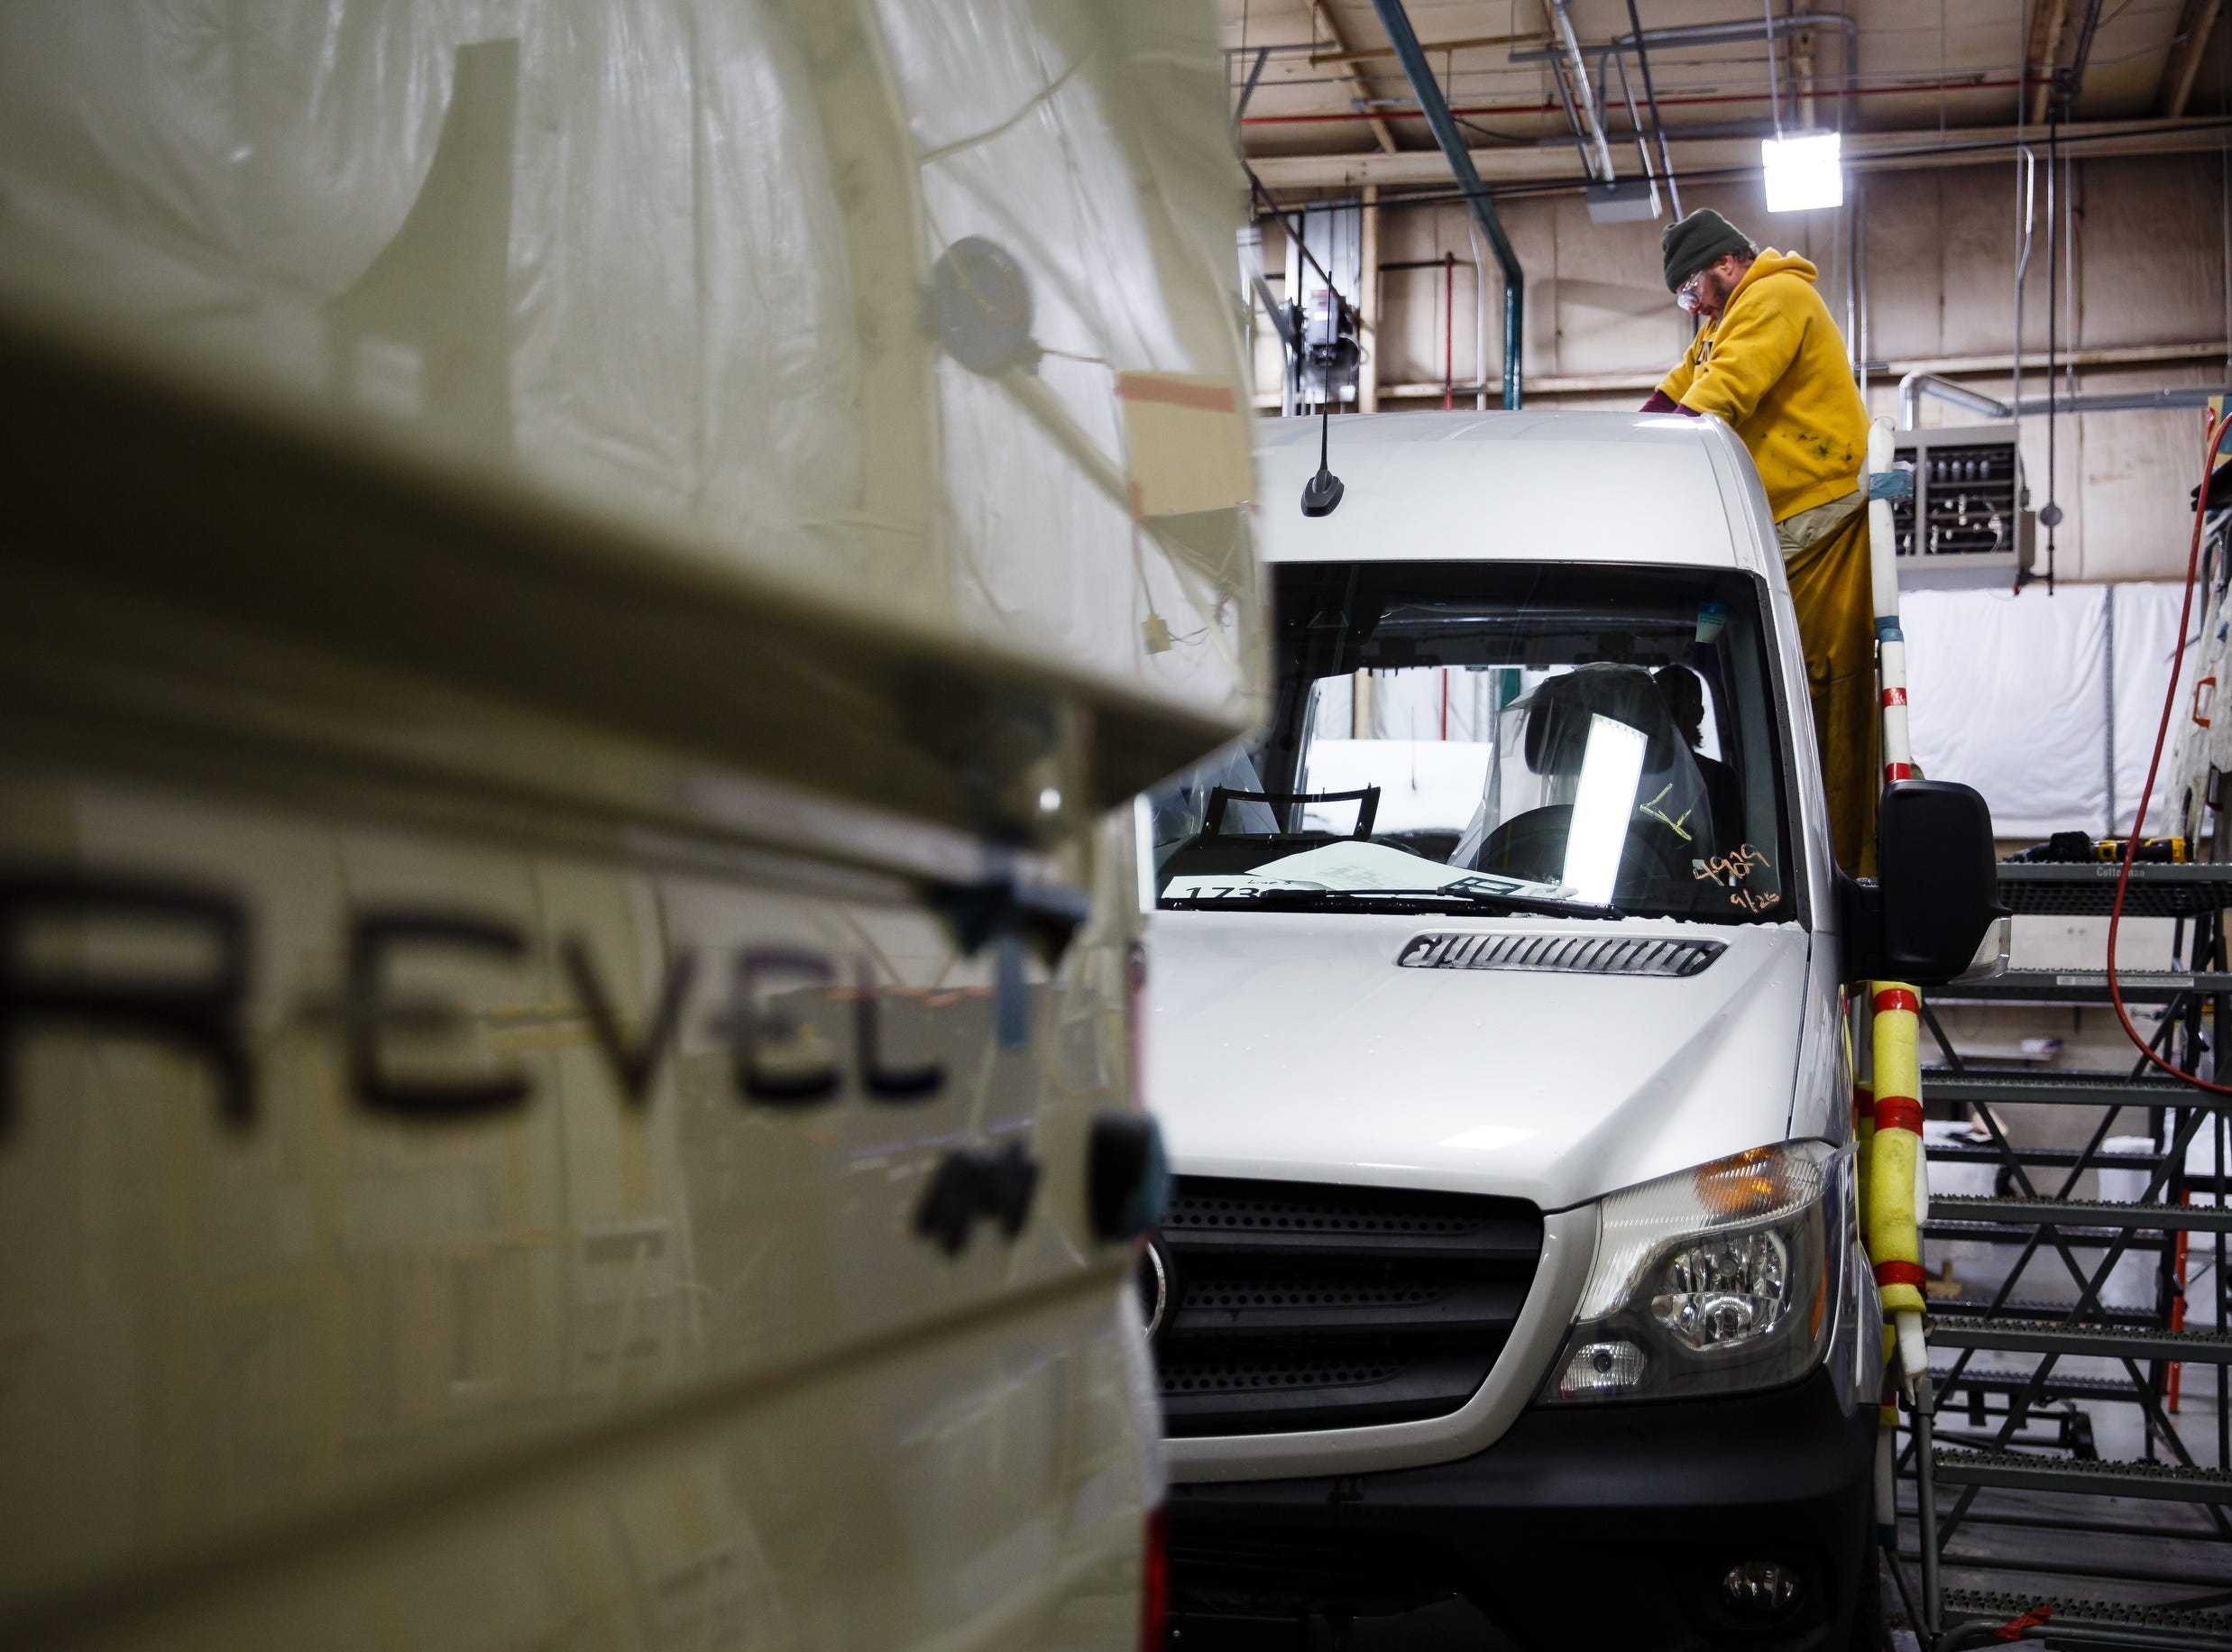 Workers make cutouts for various roof mounted accessories on the Winnebago Revel at the companies Lake Mills factory on Wednesday, Dec. 5, 2018. The Revel, with its 4x4 and rugged nature has sparked the interest of outdoor enthusiasts and has helped the motor home manufacture rebound from poor sales during the recession.